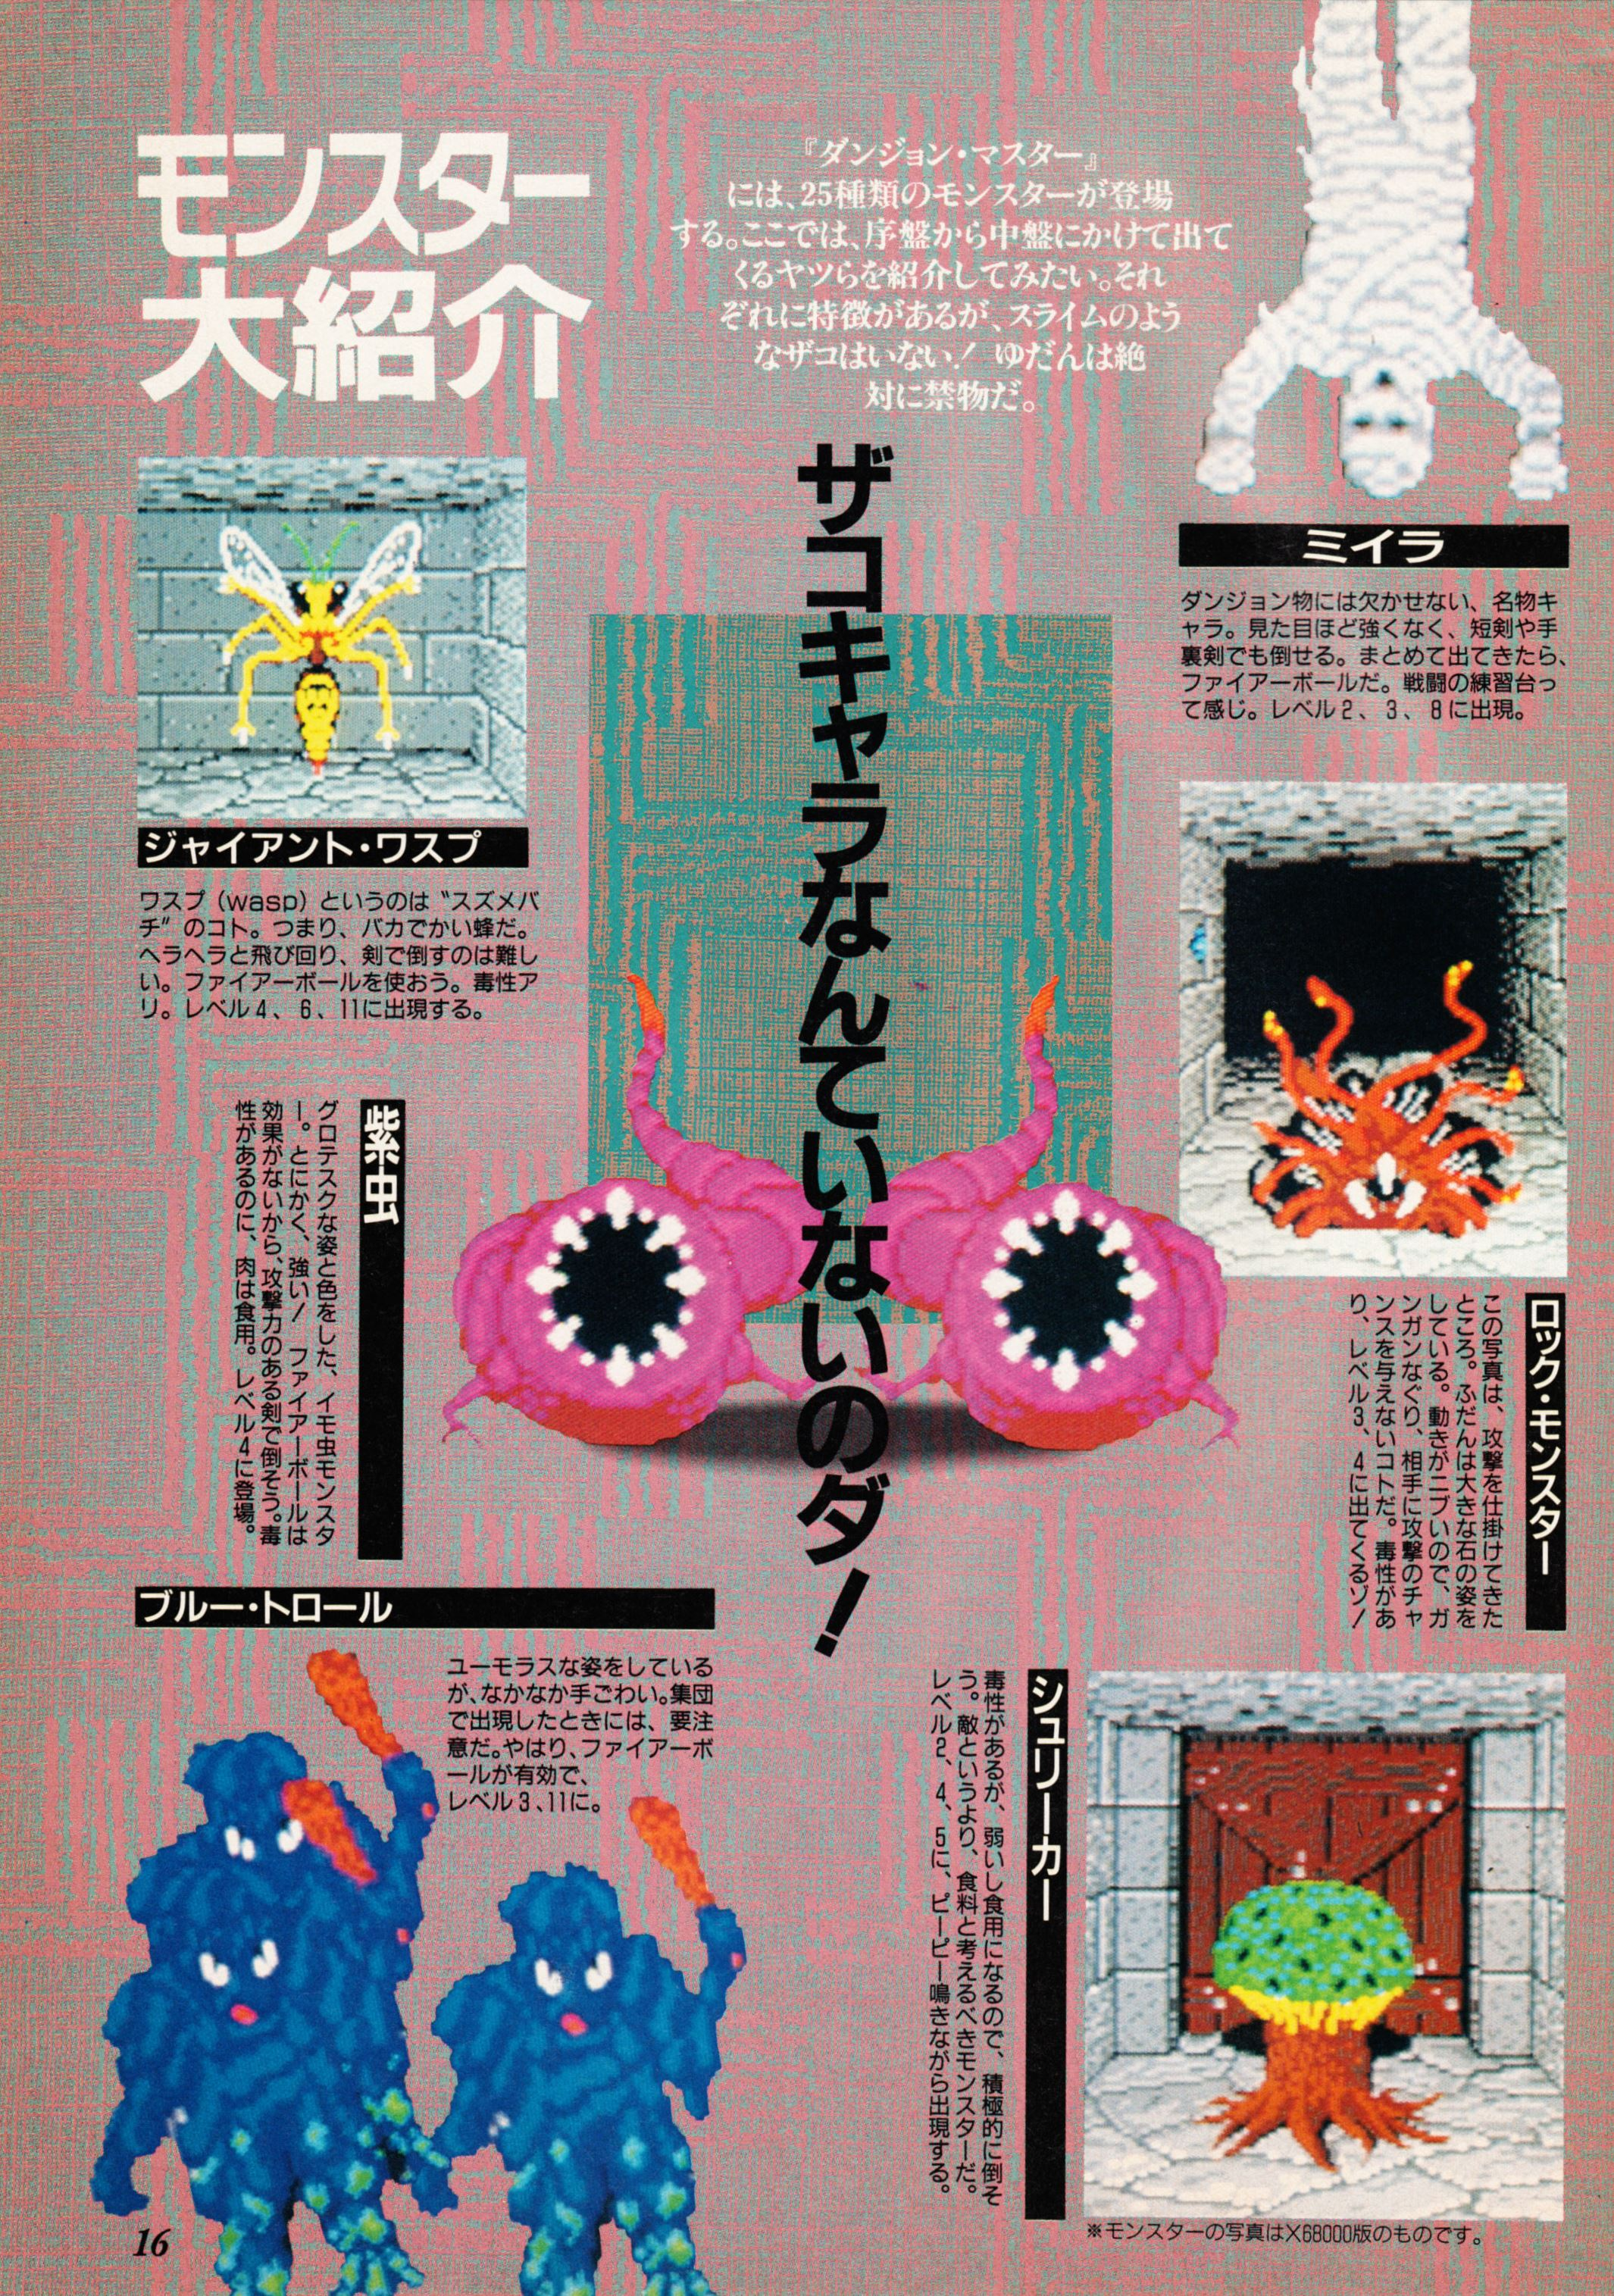 Supplement - Dungeon Master Companion Manual Guide published in Japanese magazine 'Popcom', Vol 4 No 1 01 April 1990, Page 18